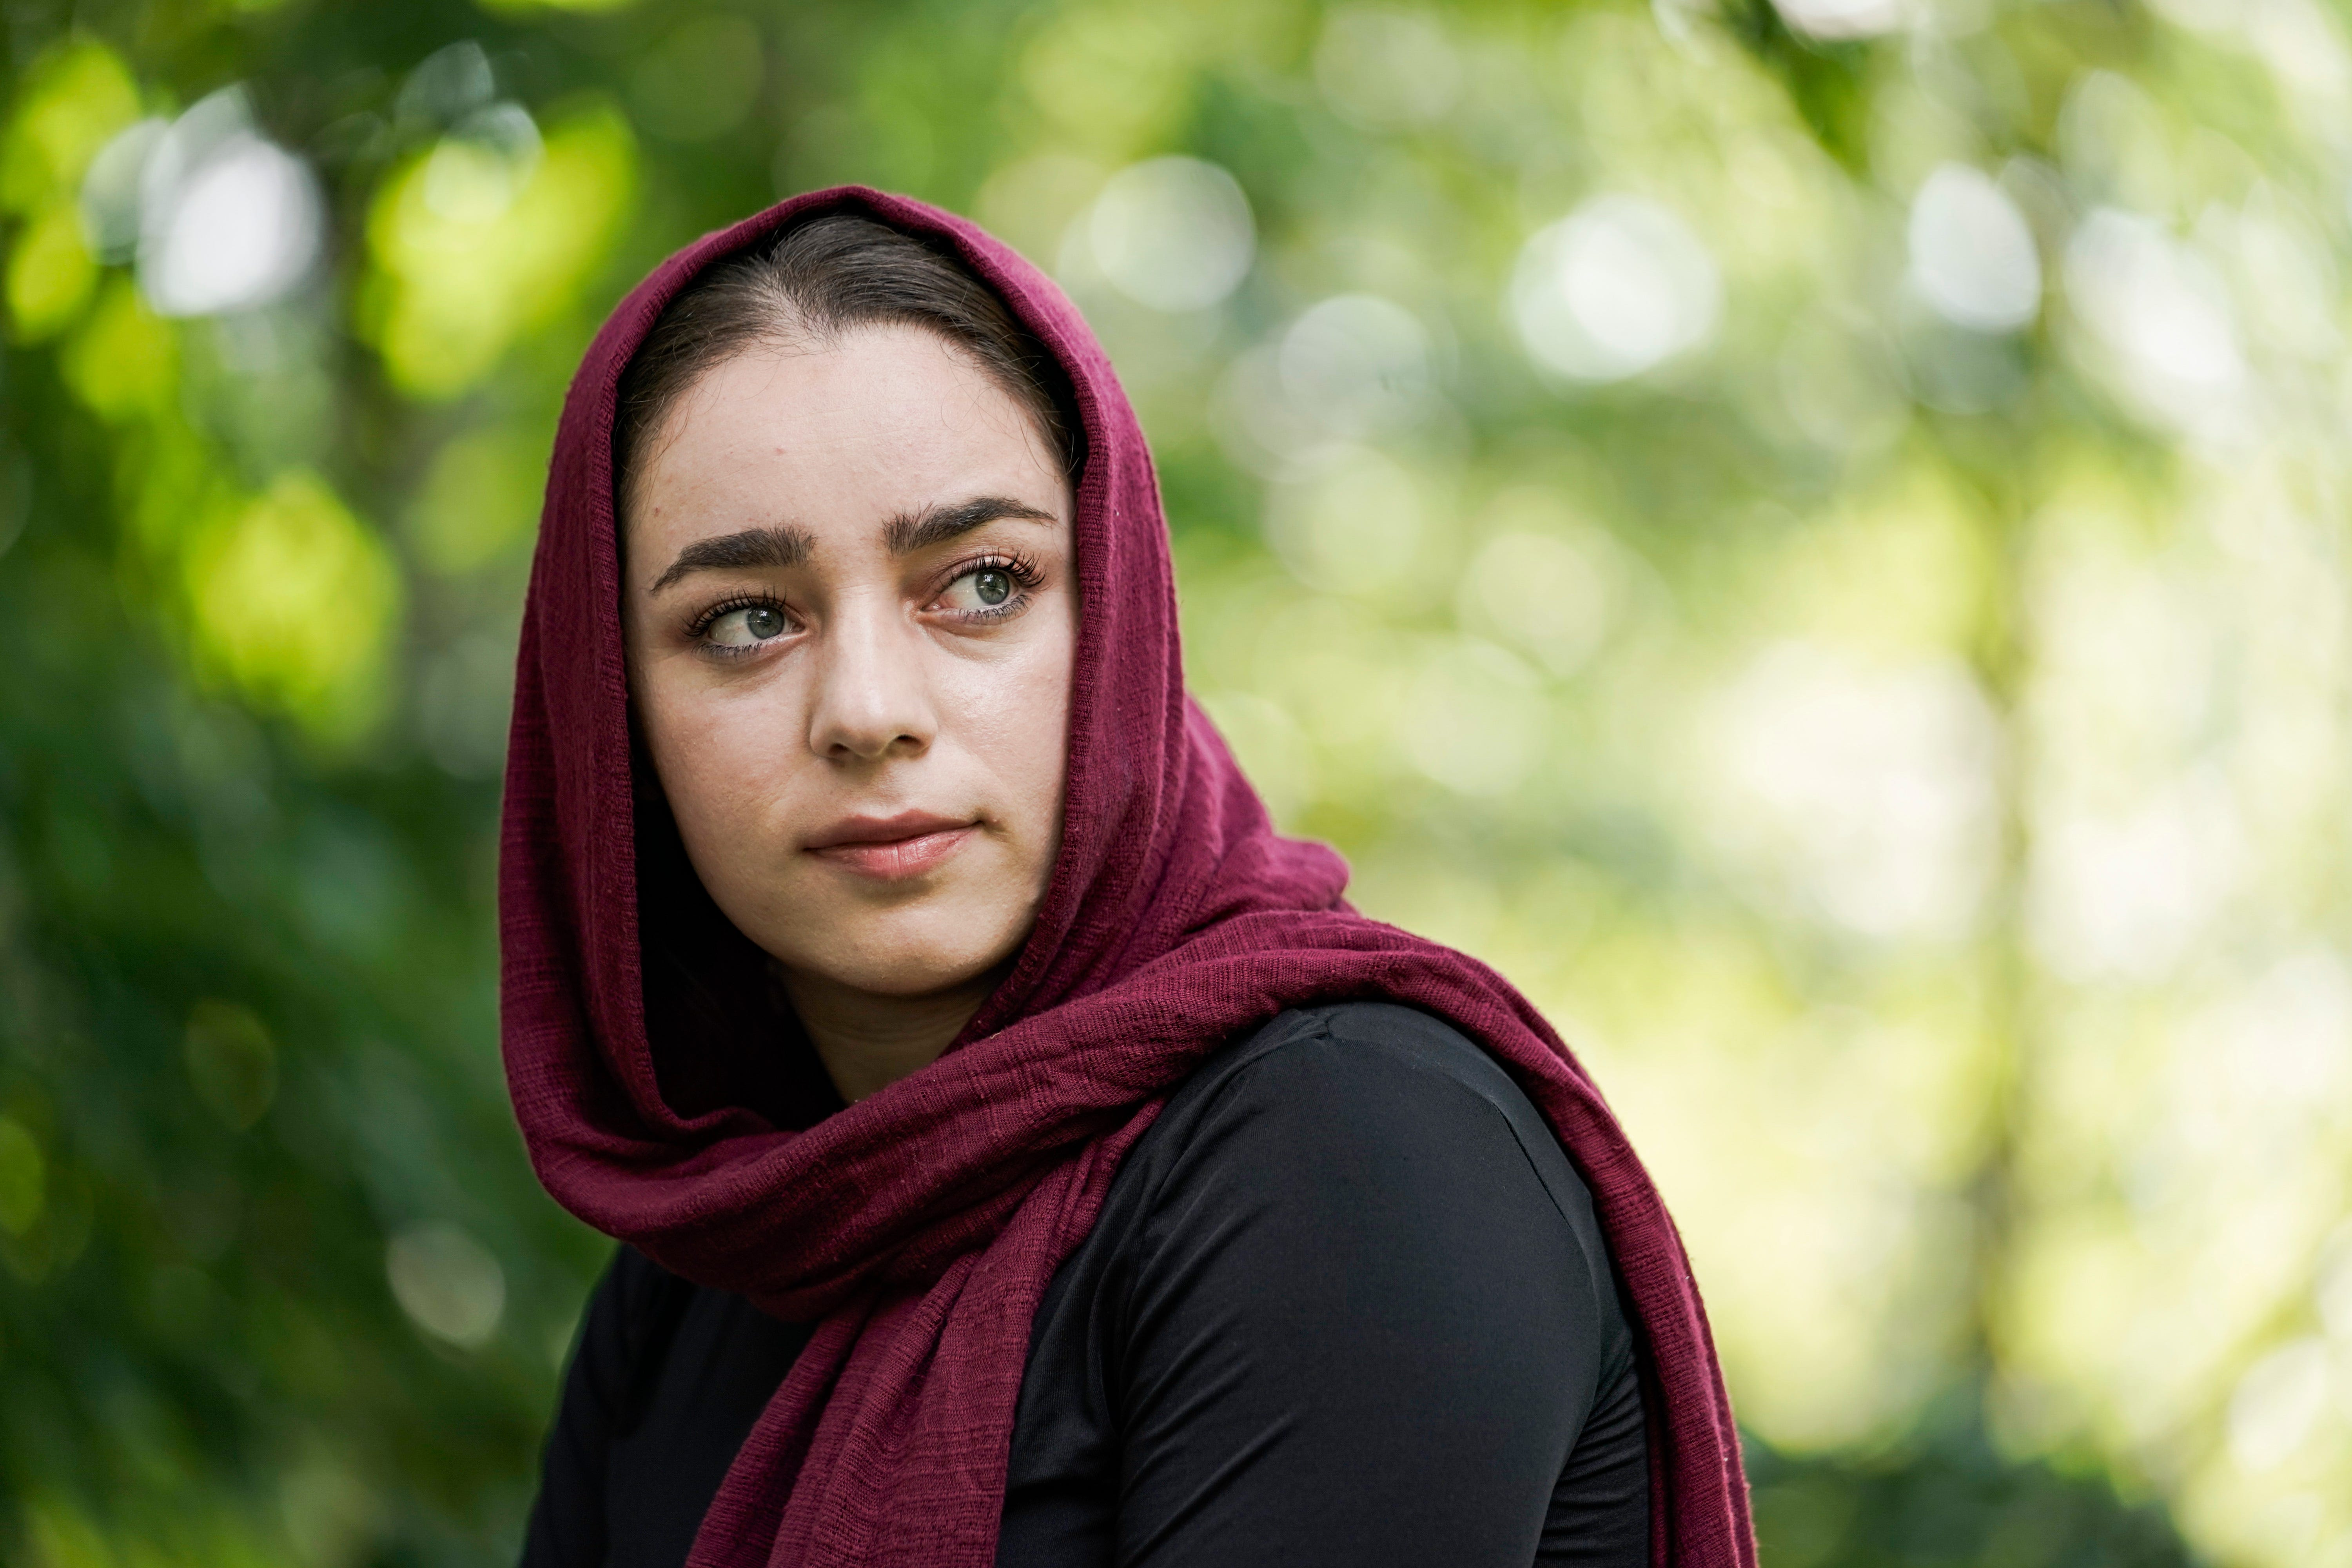 Aug 25, 2021; Charlottesville, Virginia, United States; August 25, 2021; Charlottesville, Va.  Zainora Babayee, 23, grew up not knowing what the terrorist attacks on September 11th were. Babayee grew up in U.S. occupied  Afghanistan before immigrating to the United States with her parents and 6 siblings five years ago after her father worked as a private contractor with the U.S. military. She says she really only came to understand what happened on 9/11 once she moved to the United States. Babayee is now a student at University of Virginia in Charlottesville, studying government.